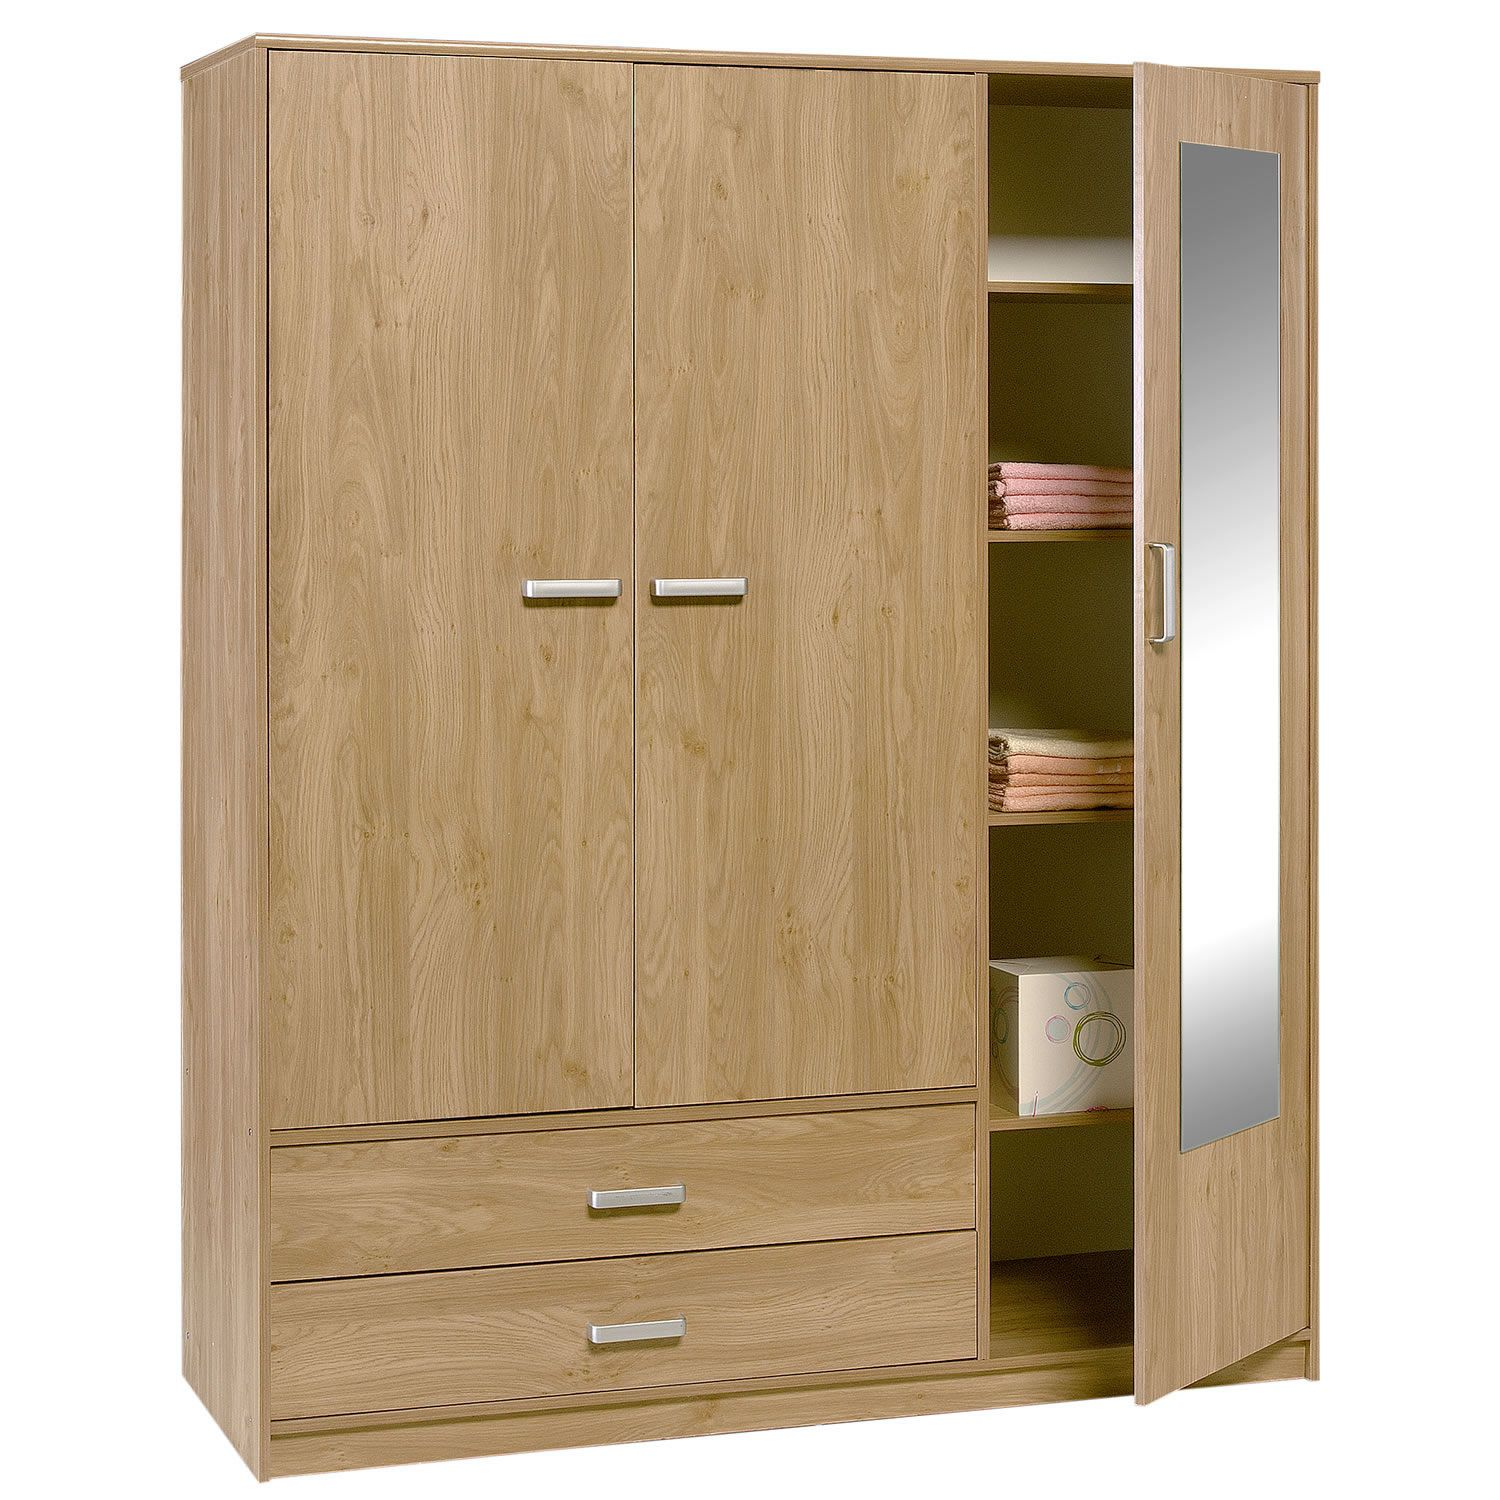 wardrobe images. wardrobessingle door wardrobe double with mirror inner images